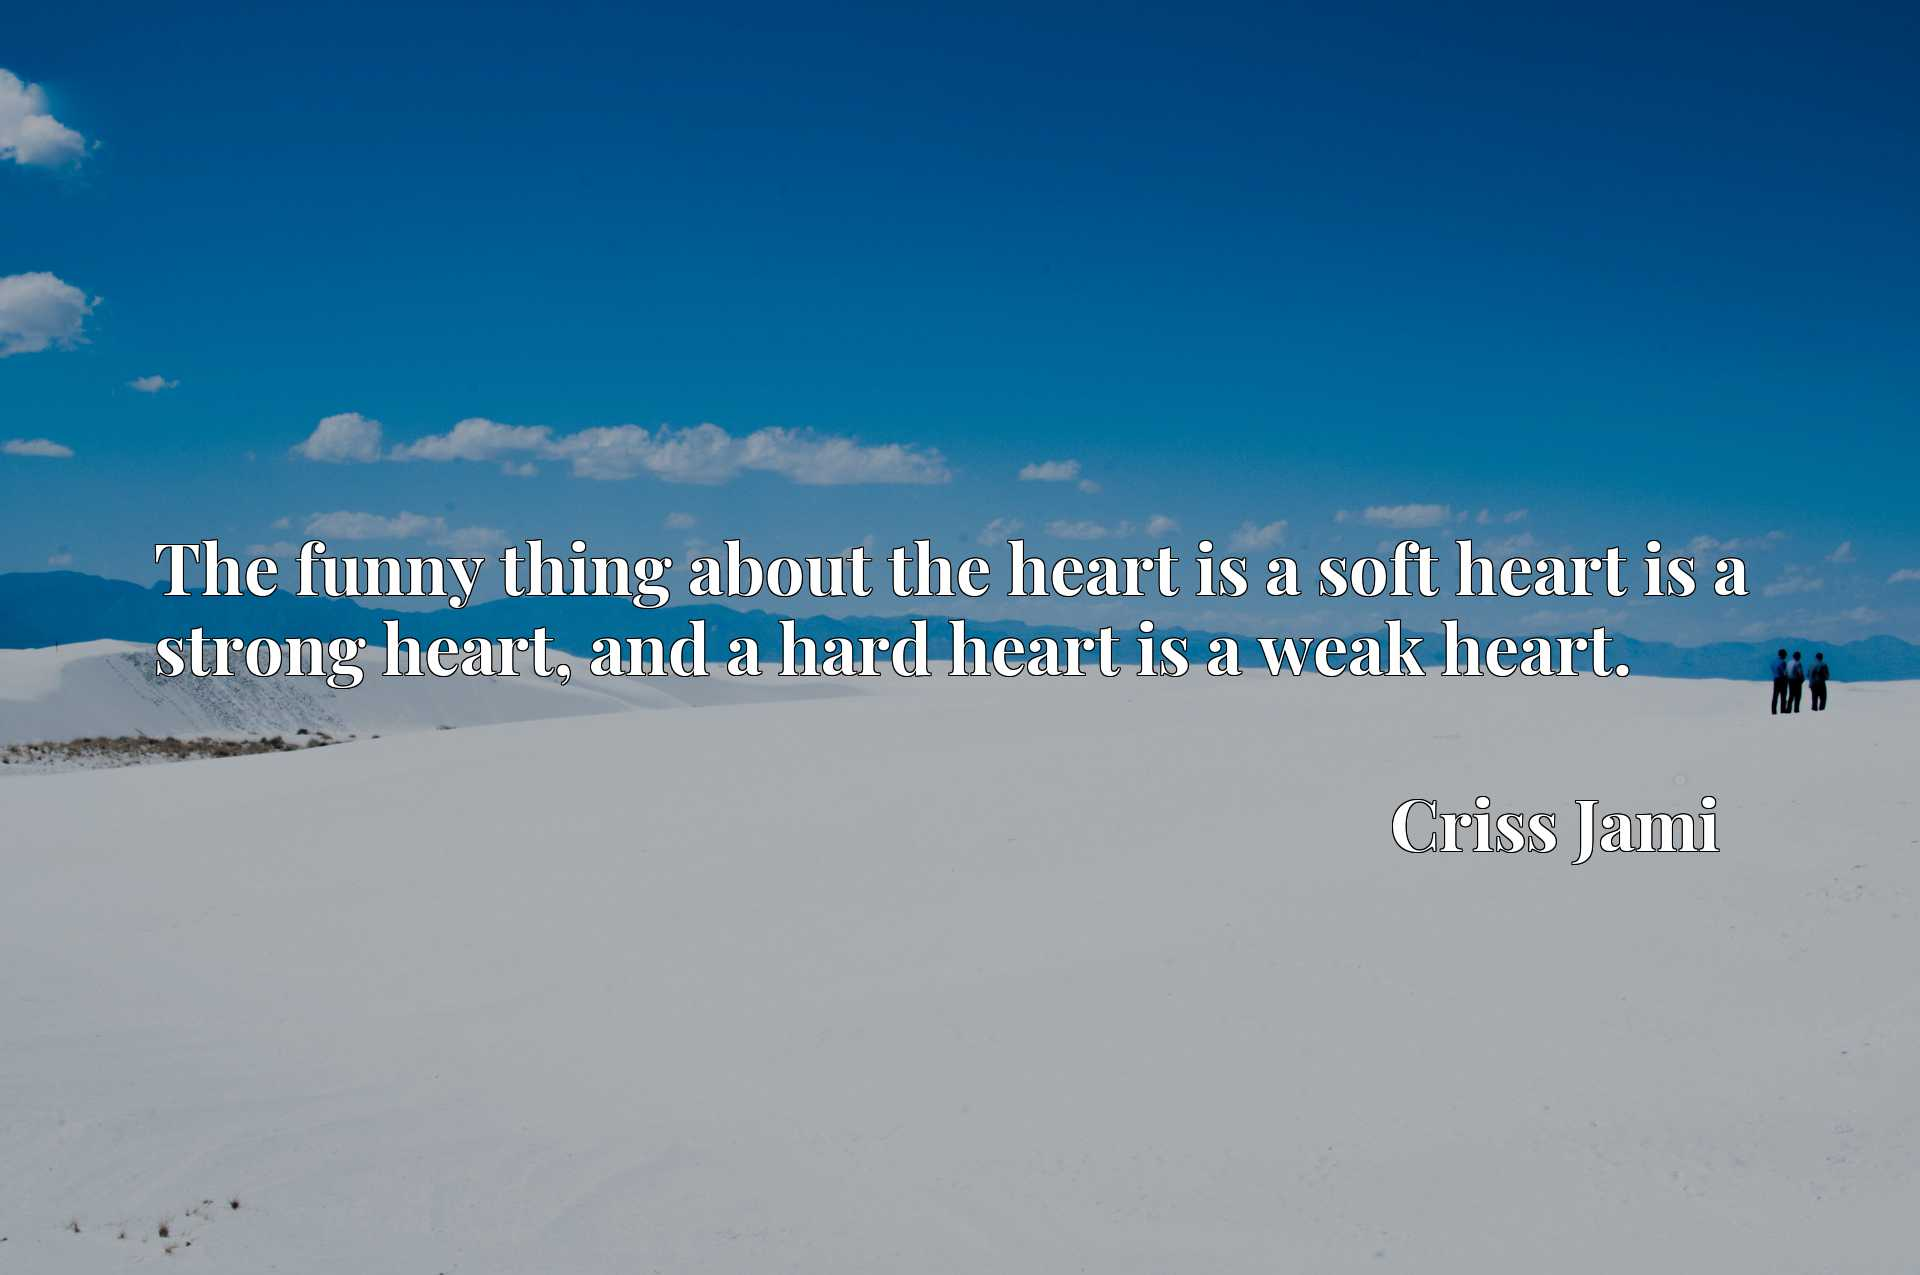 The funny thing about the heart is a soft heart is a strong heart, and a hard heart is a weak heart.